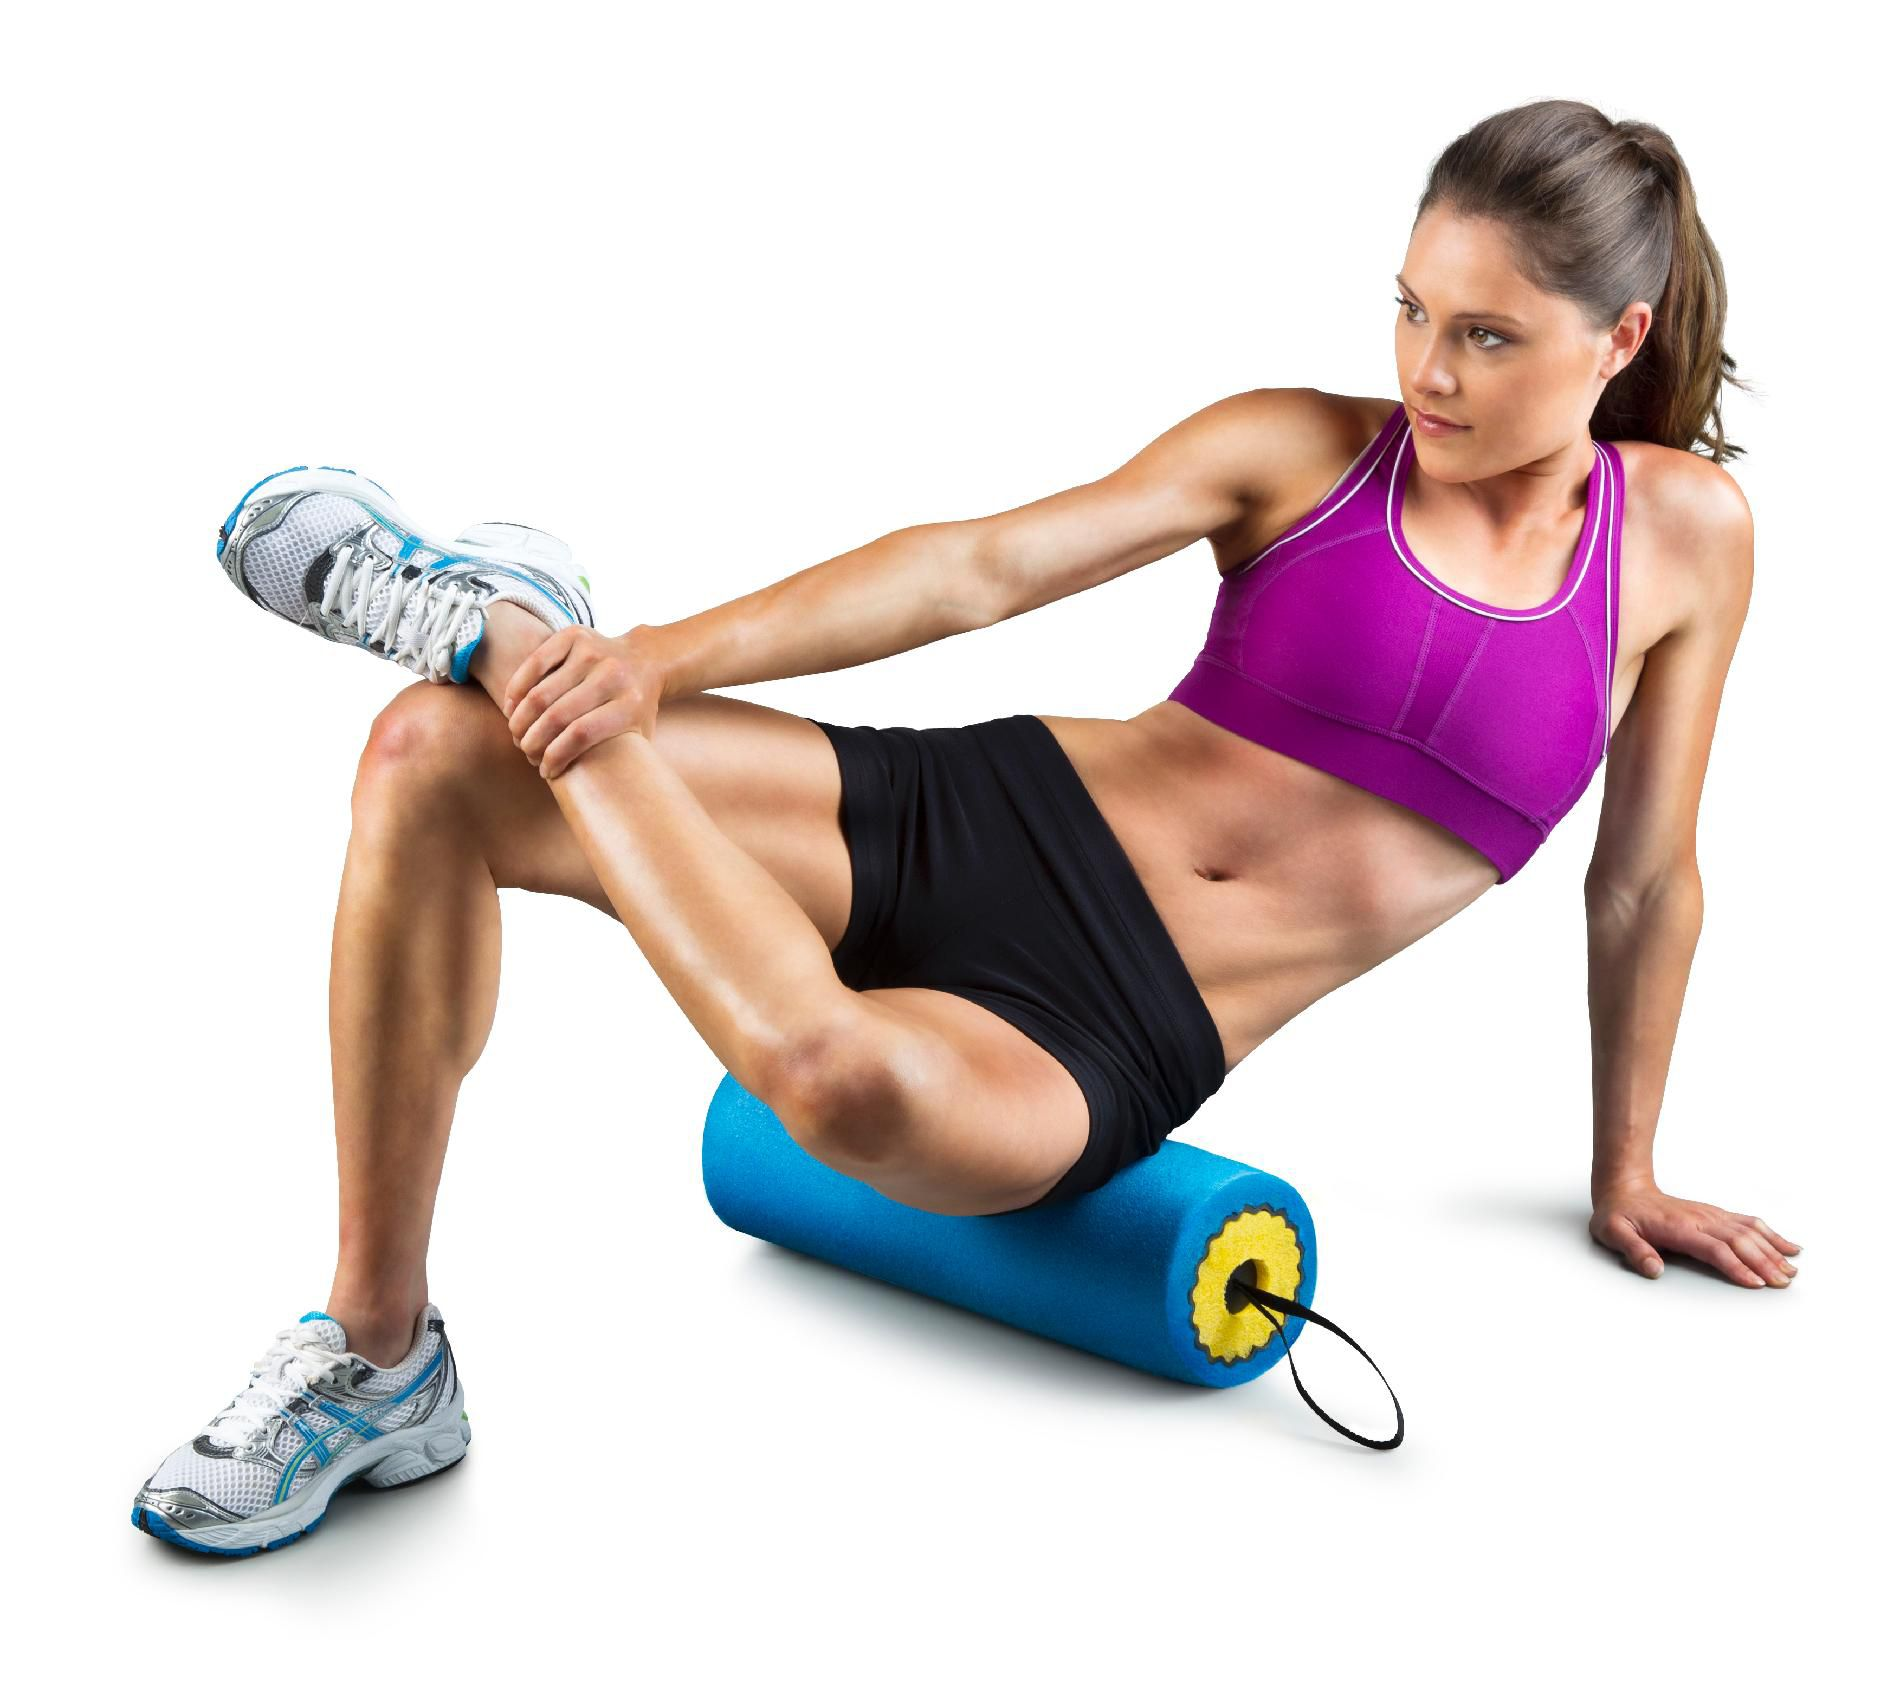 3-In-1 Foam Roller                                                                                                               at mygofer.com